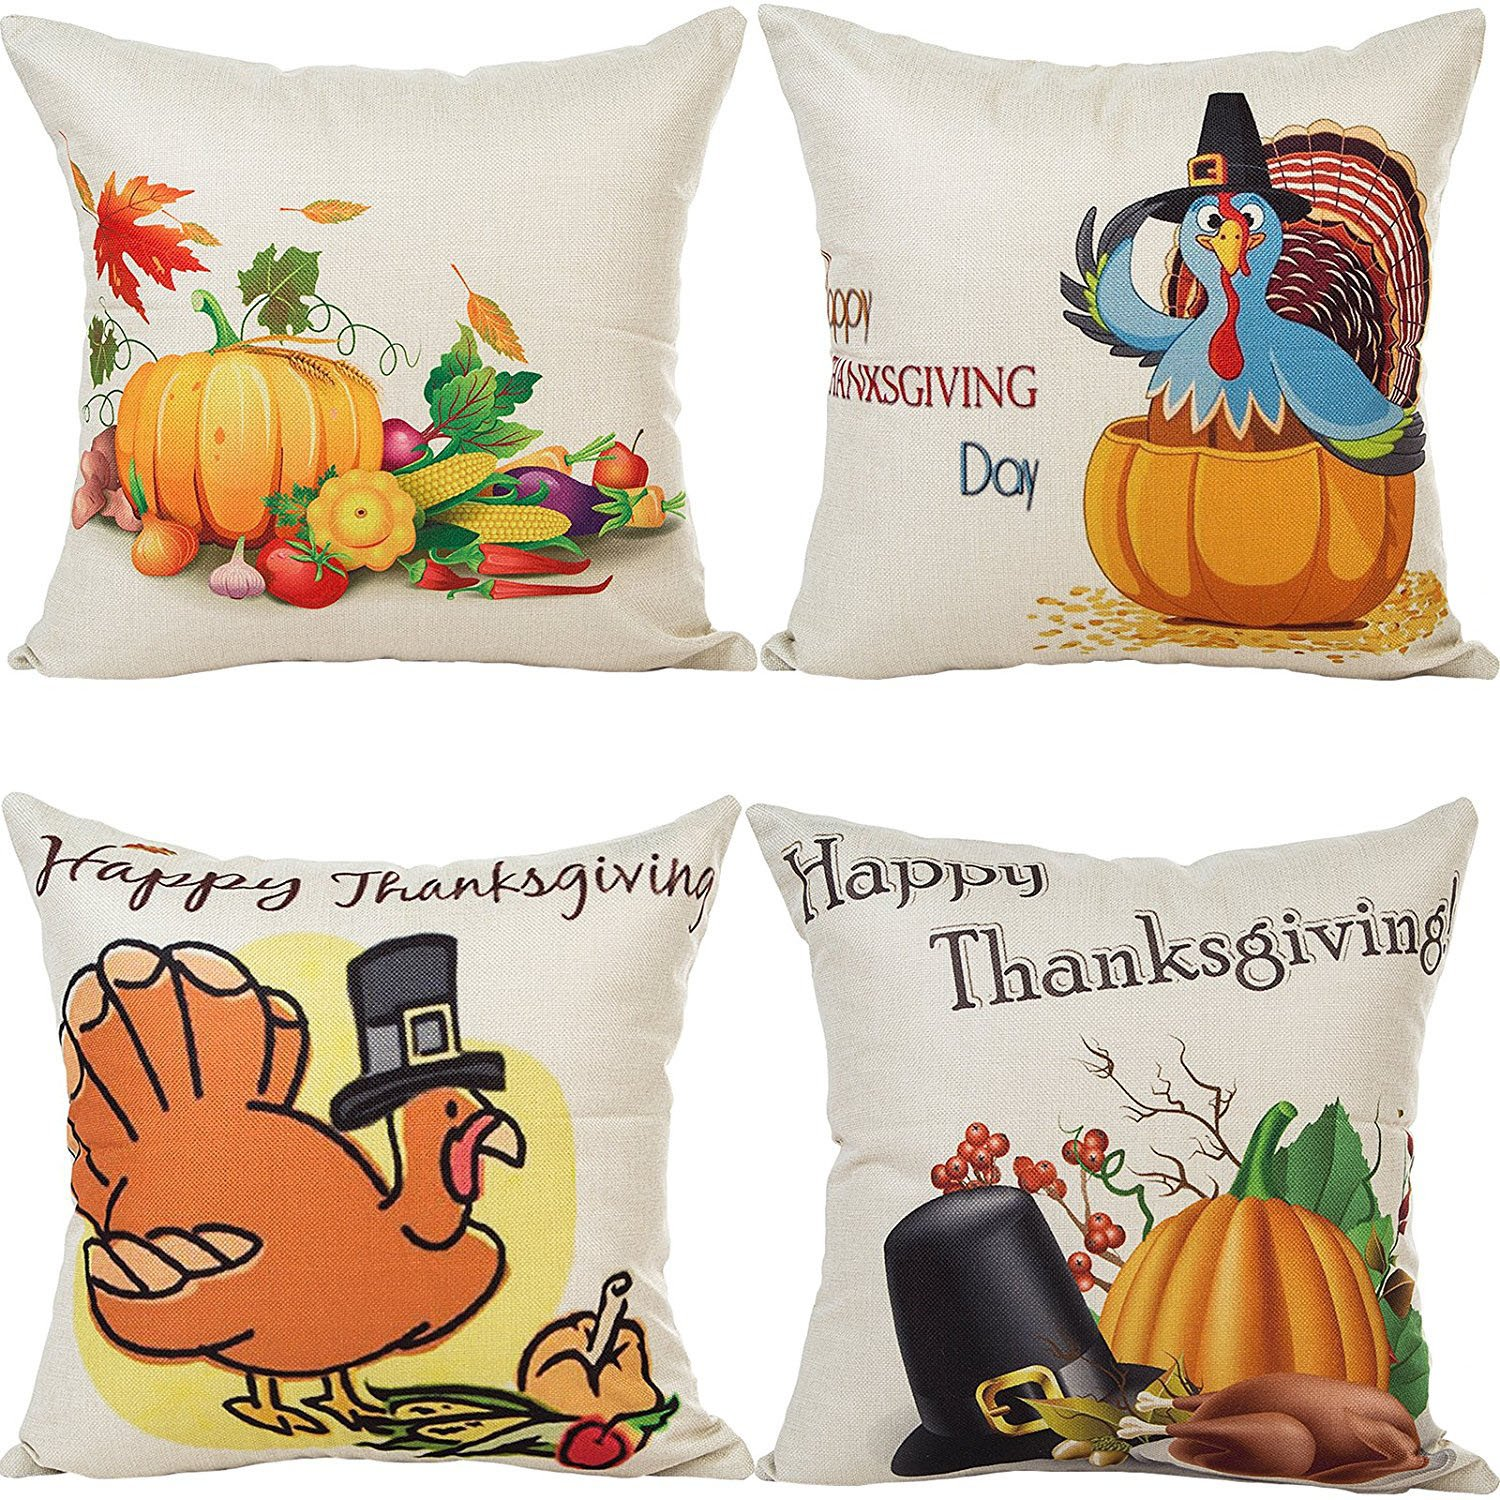 4 X Happy Thanksgiving Style Cotton Linen Pillow Cover Square